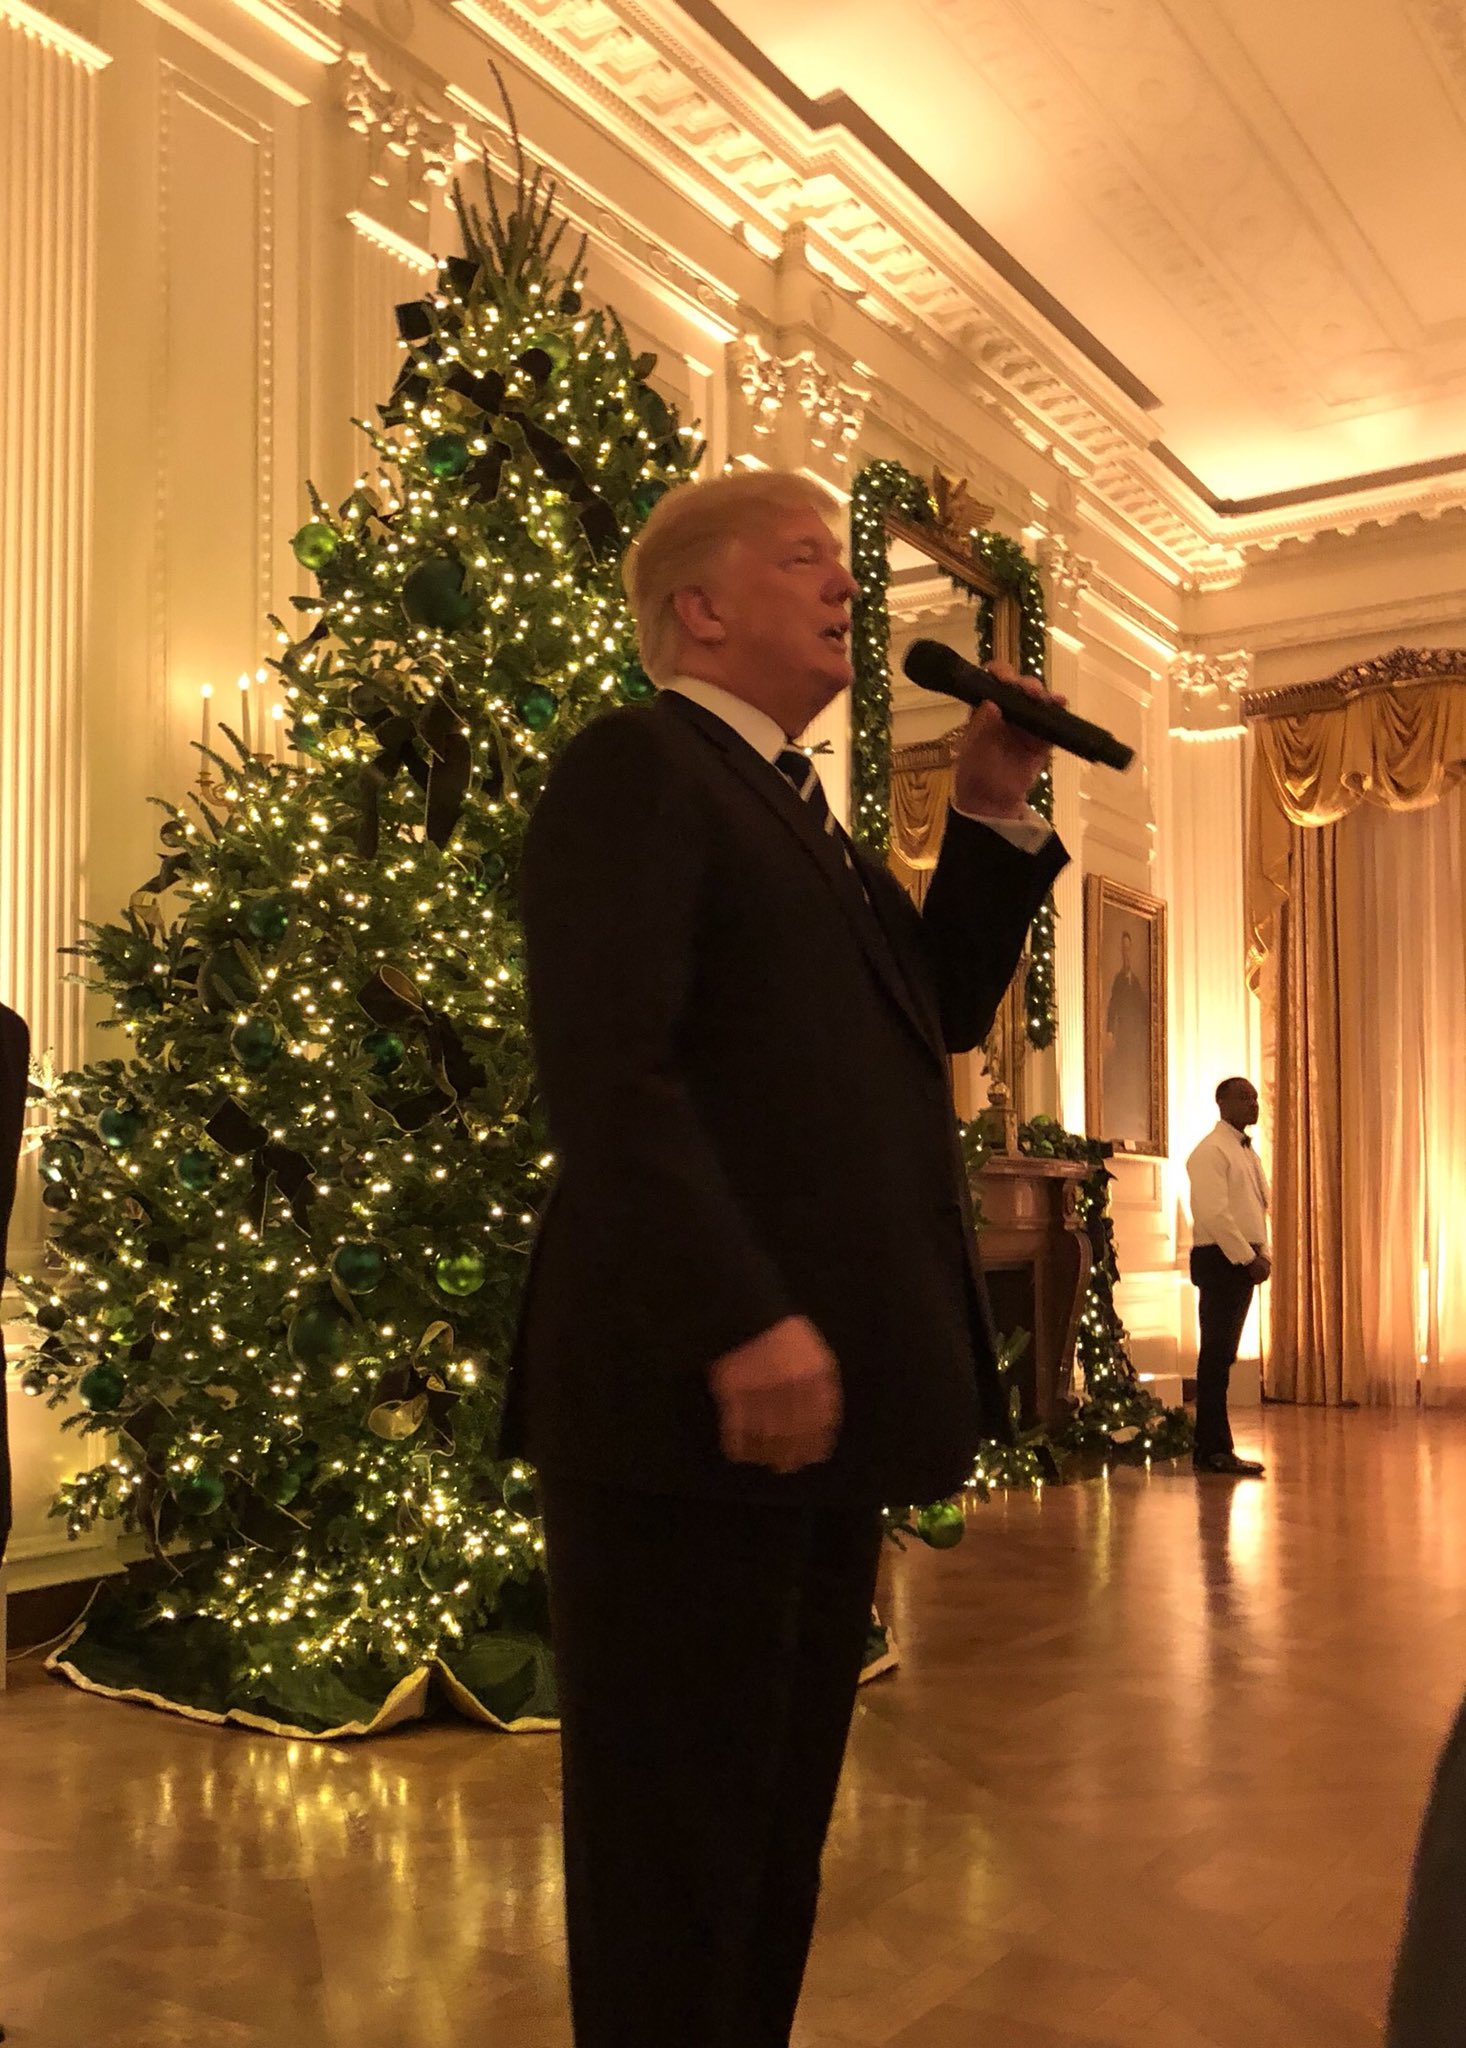 President talks year one accomplishments at WH Christmas party last night before Senate passes historic tax cuts https://t.co/OghQ9FI56d